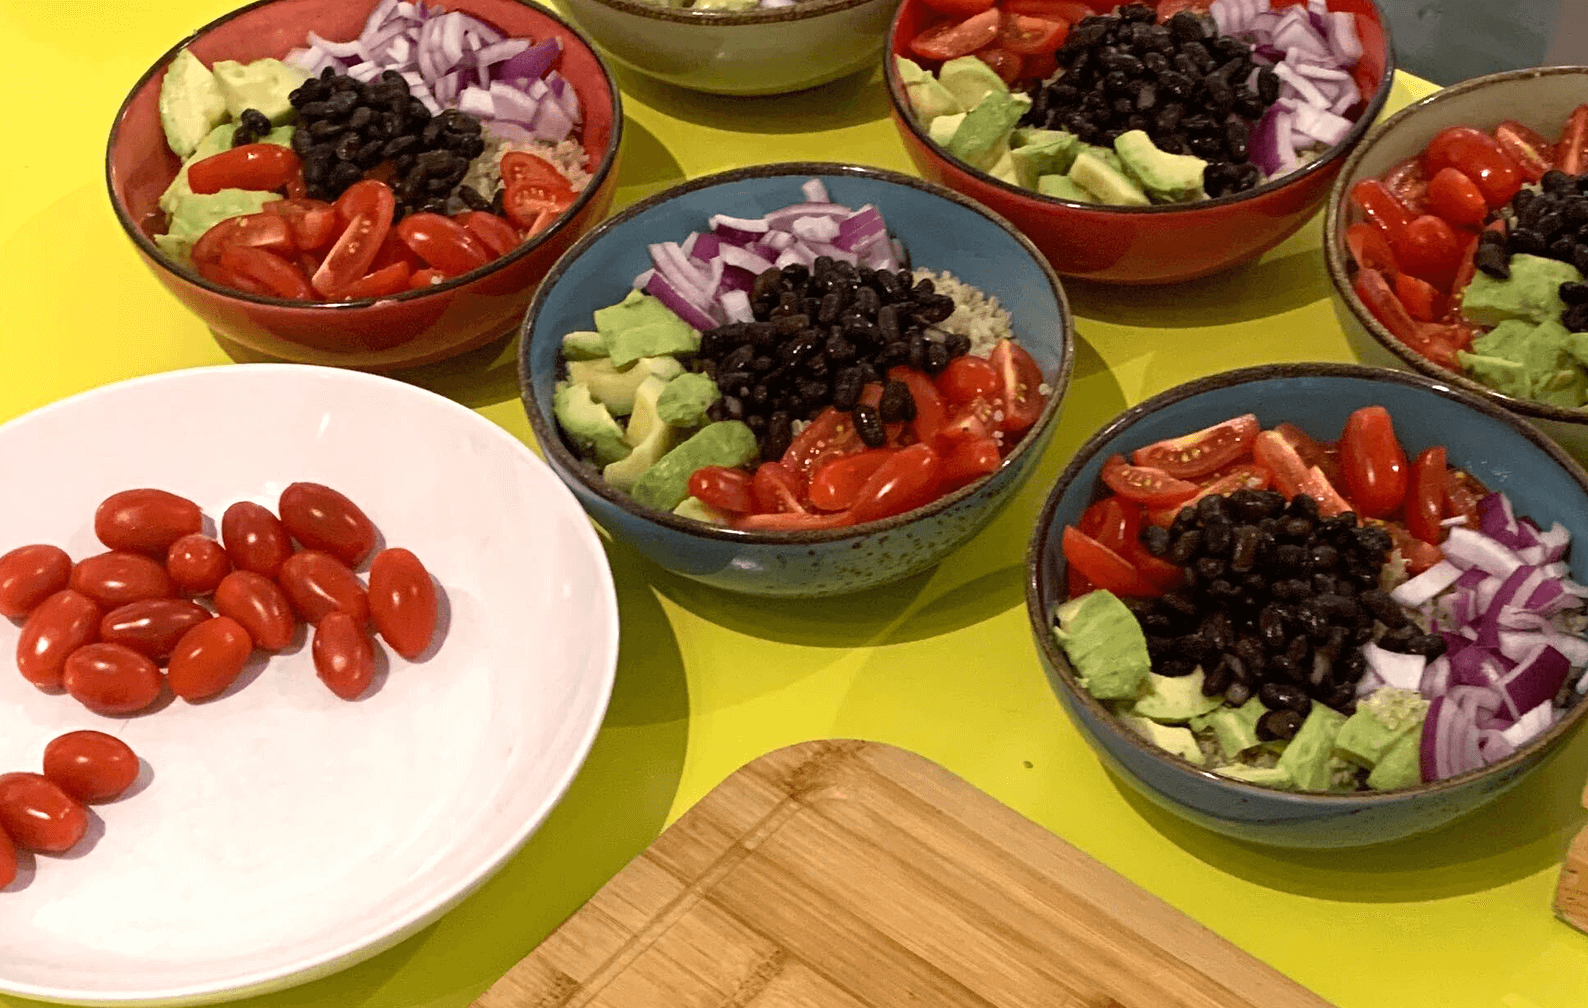 Some colorful bowls with freshly made Quinoa with cherry tomato, black beans, red onions and avocado.